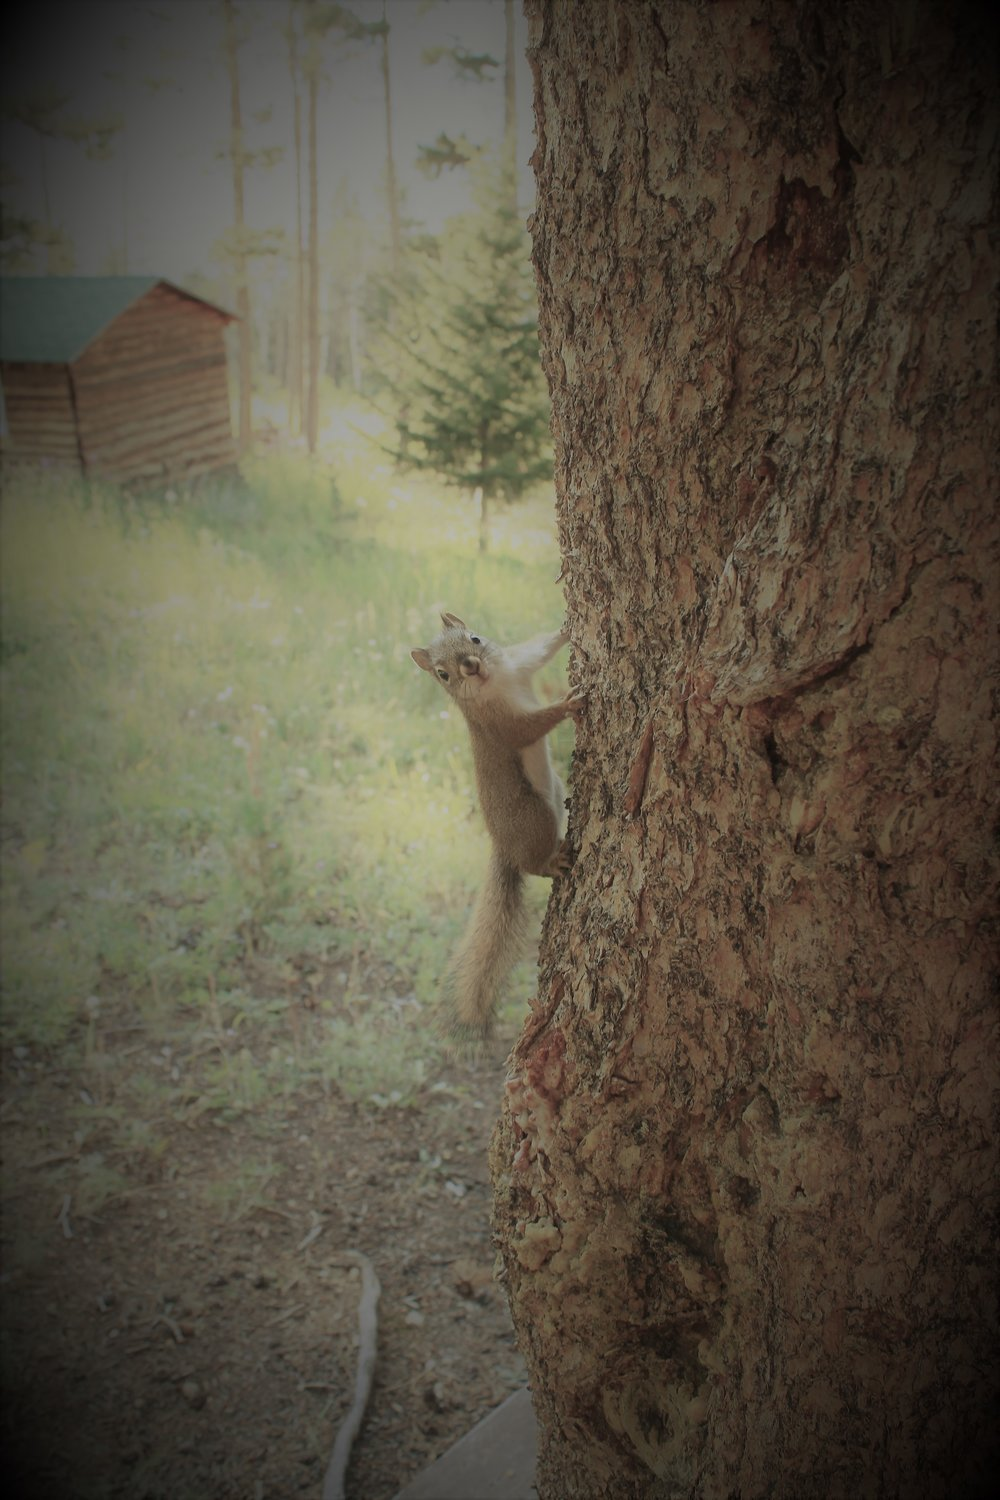 squirrel on tree.JPG